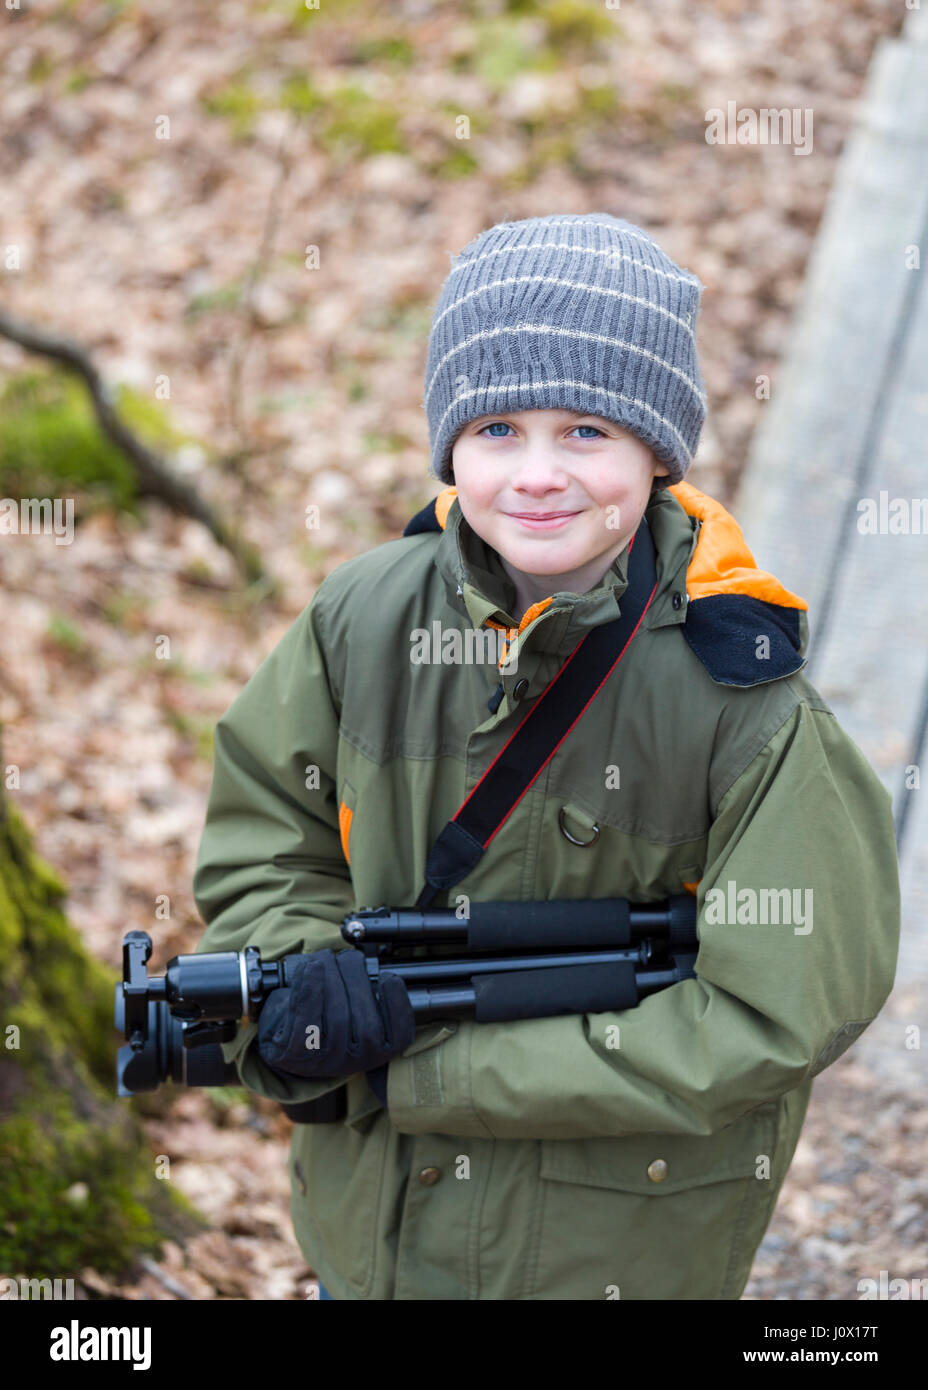 Handsome young boy with camera and tripod outdoors exploring a local nature reserve, Floda, Sweden  Model Release: - Stock Image